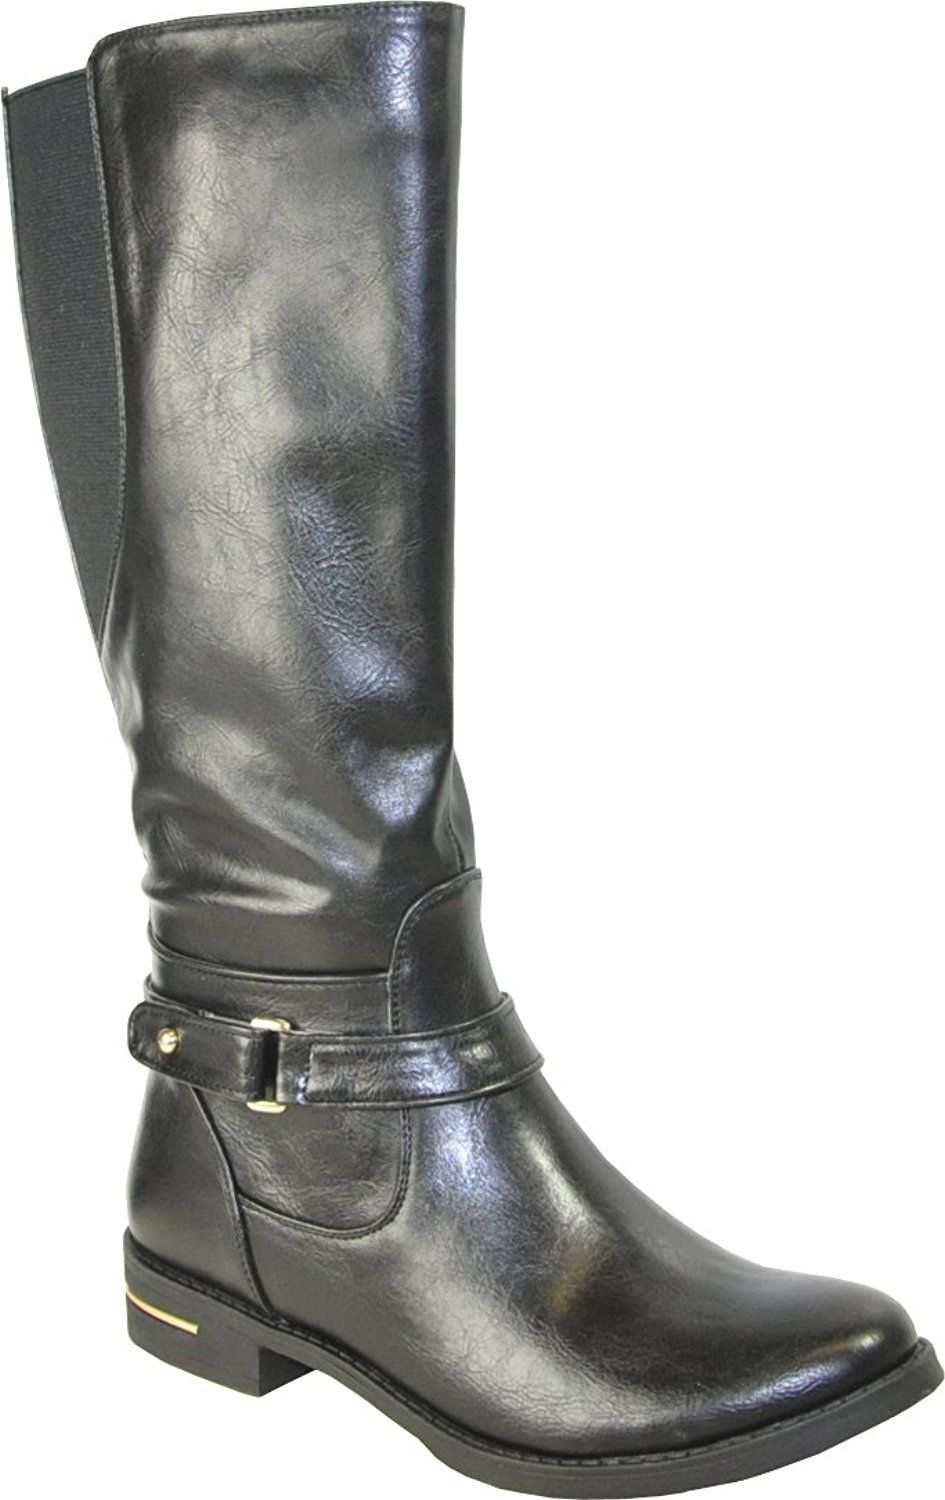 Kozi Women Riding Boot SD5512 Fashion Knee-High With Fur Lining Black 39M